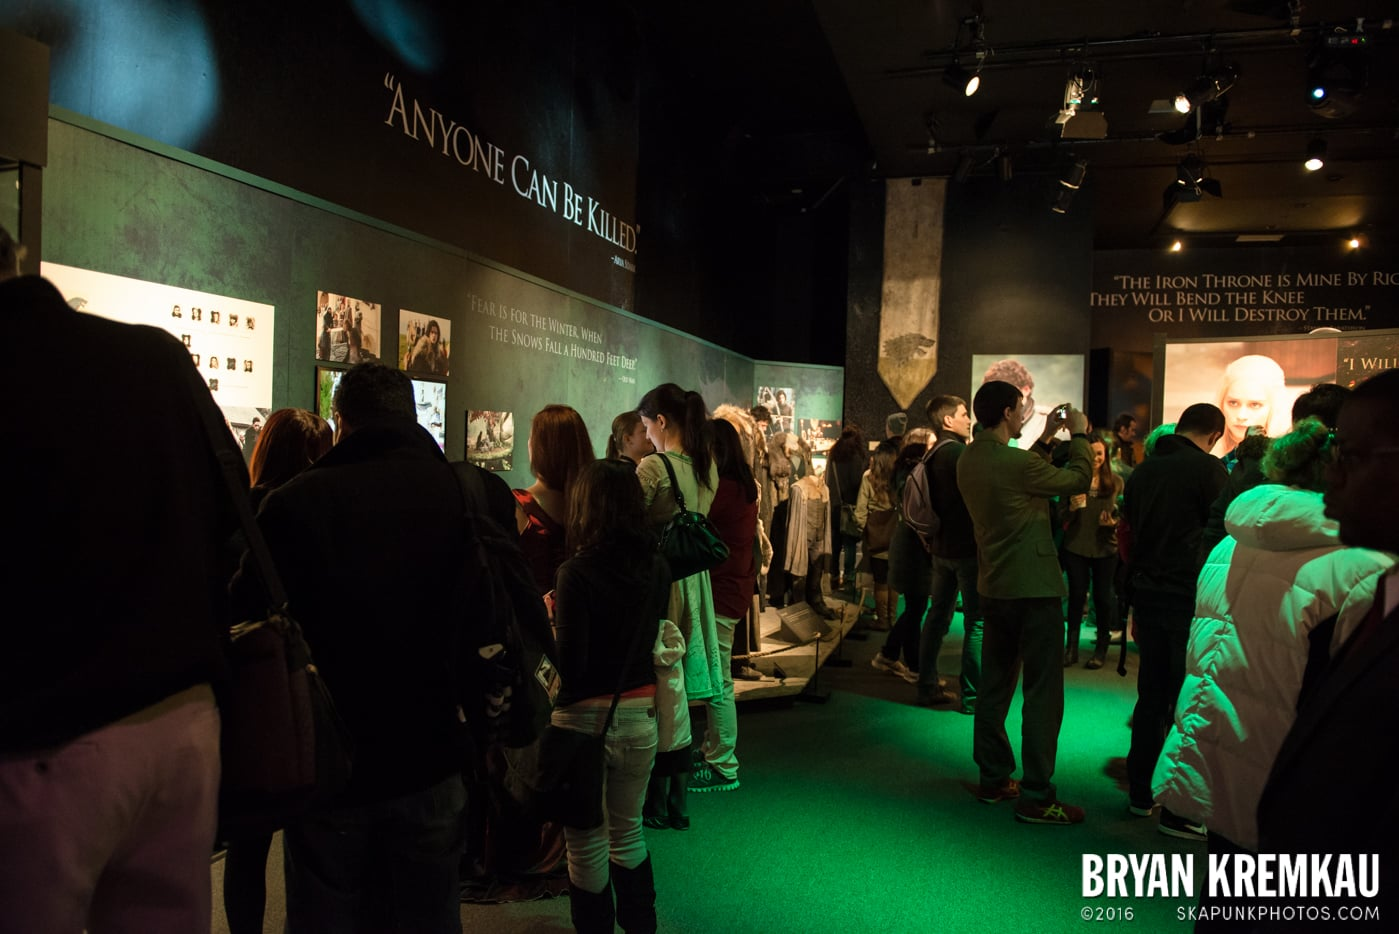 Game Of Thrones Exhibition @ New York, NY - 3.29.13 (49)